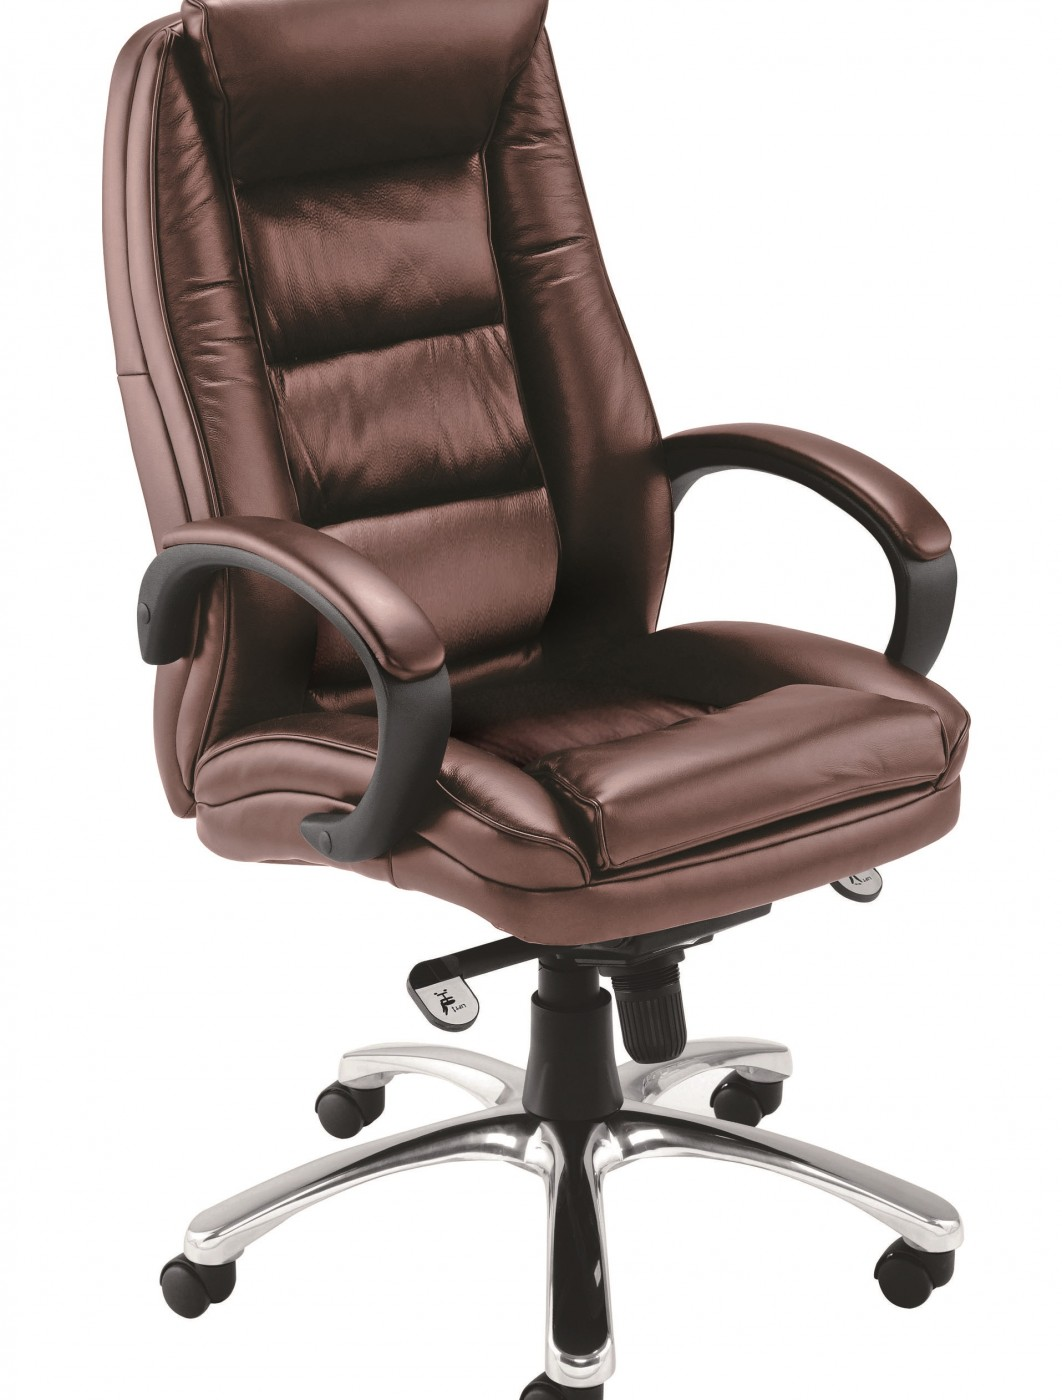 Montana Executive Leather Office Chair CH0240 121 Office Furniture